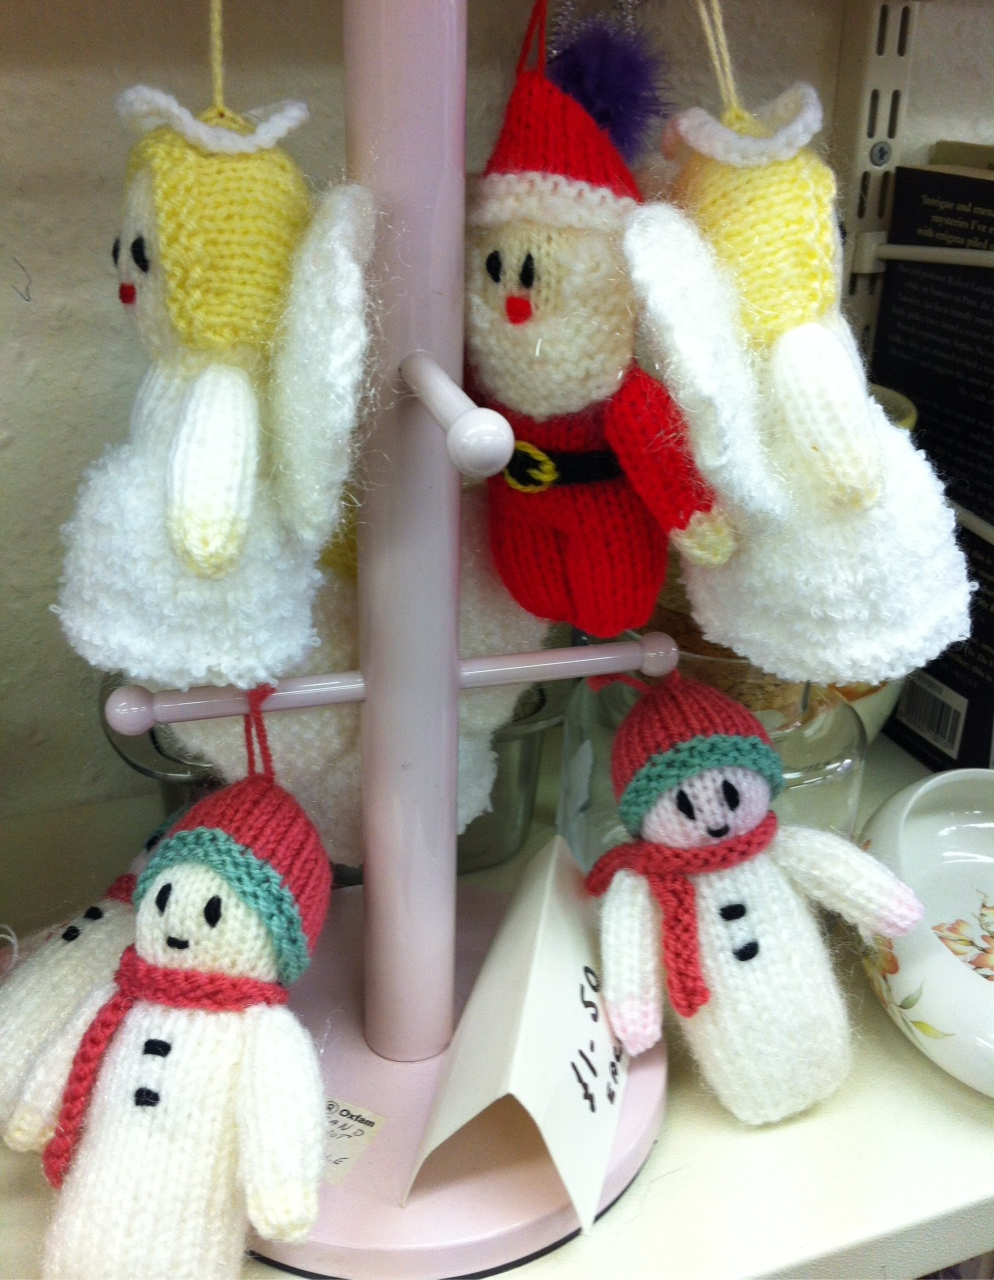 Charity Shopping For Christmas Gifts? Not Just for Scrooges & Weirdos- I Promise